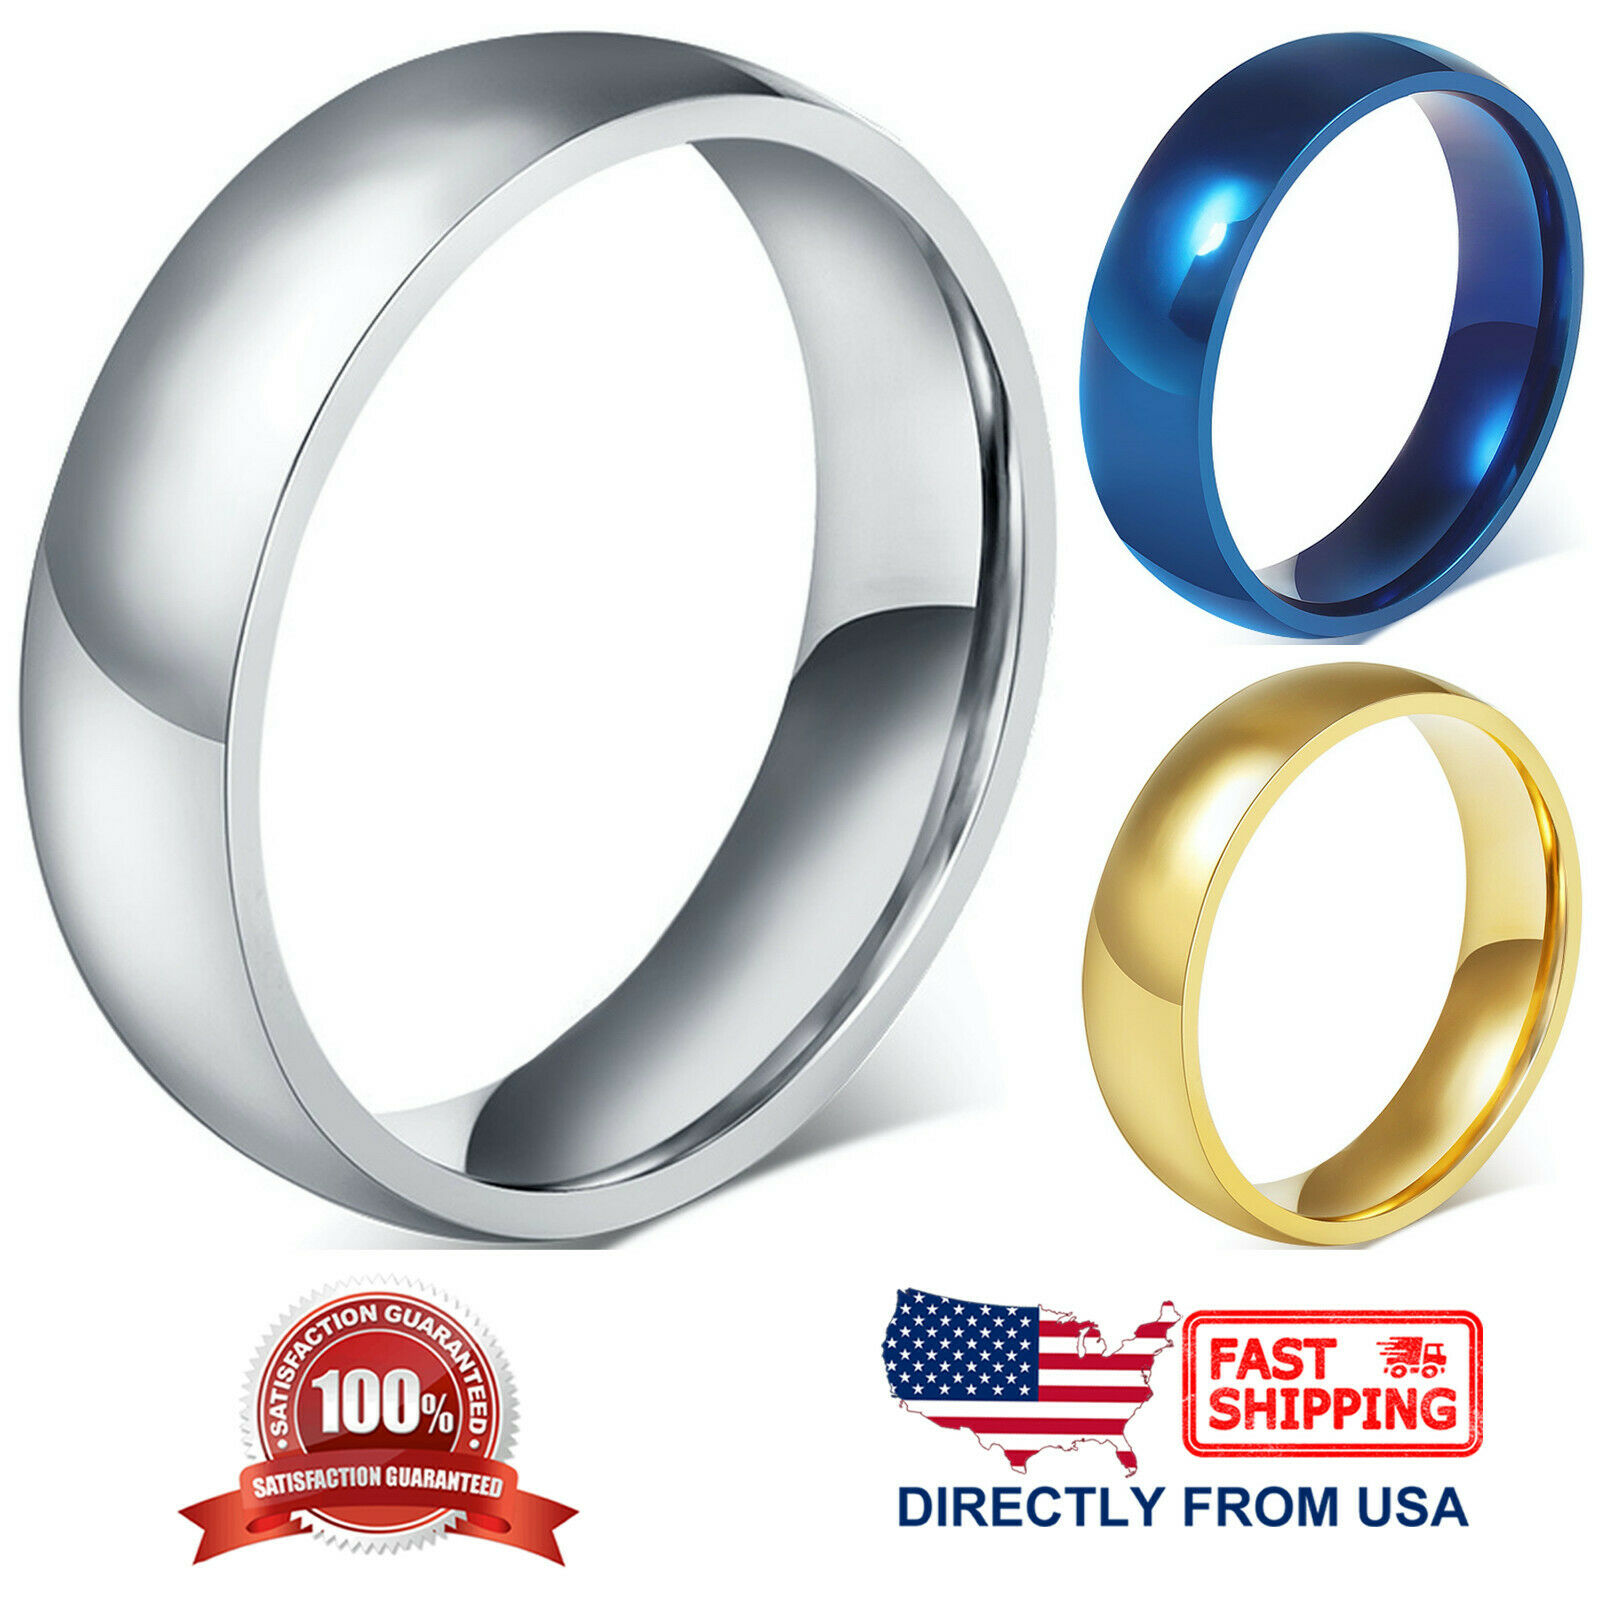 Stainless Steel Wedding Band 6mm Polished Comfort Fit Men's & Women's Ring Jewelry & Watches